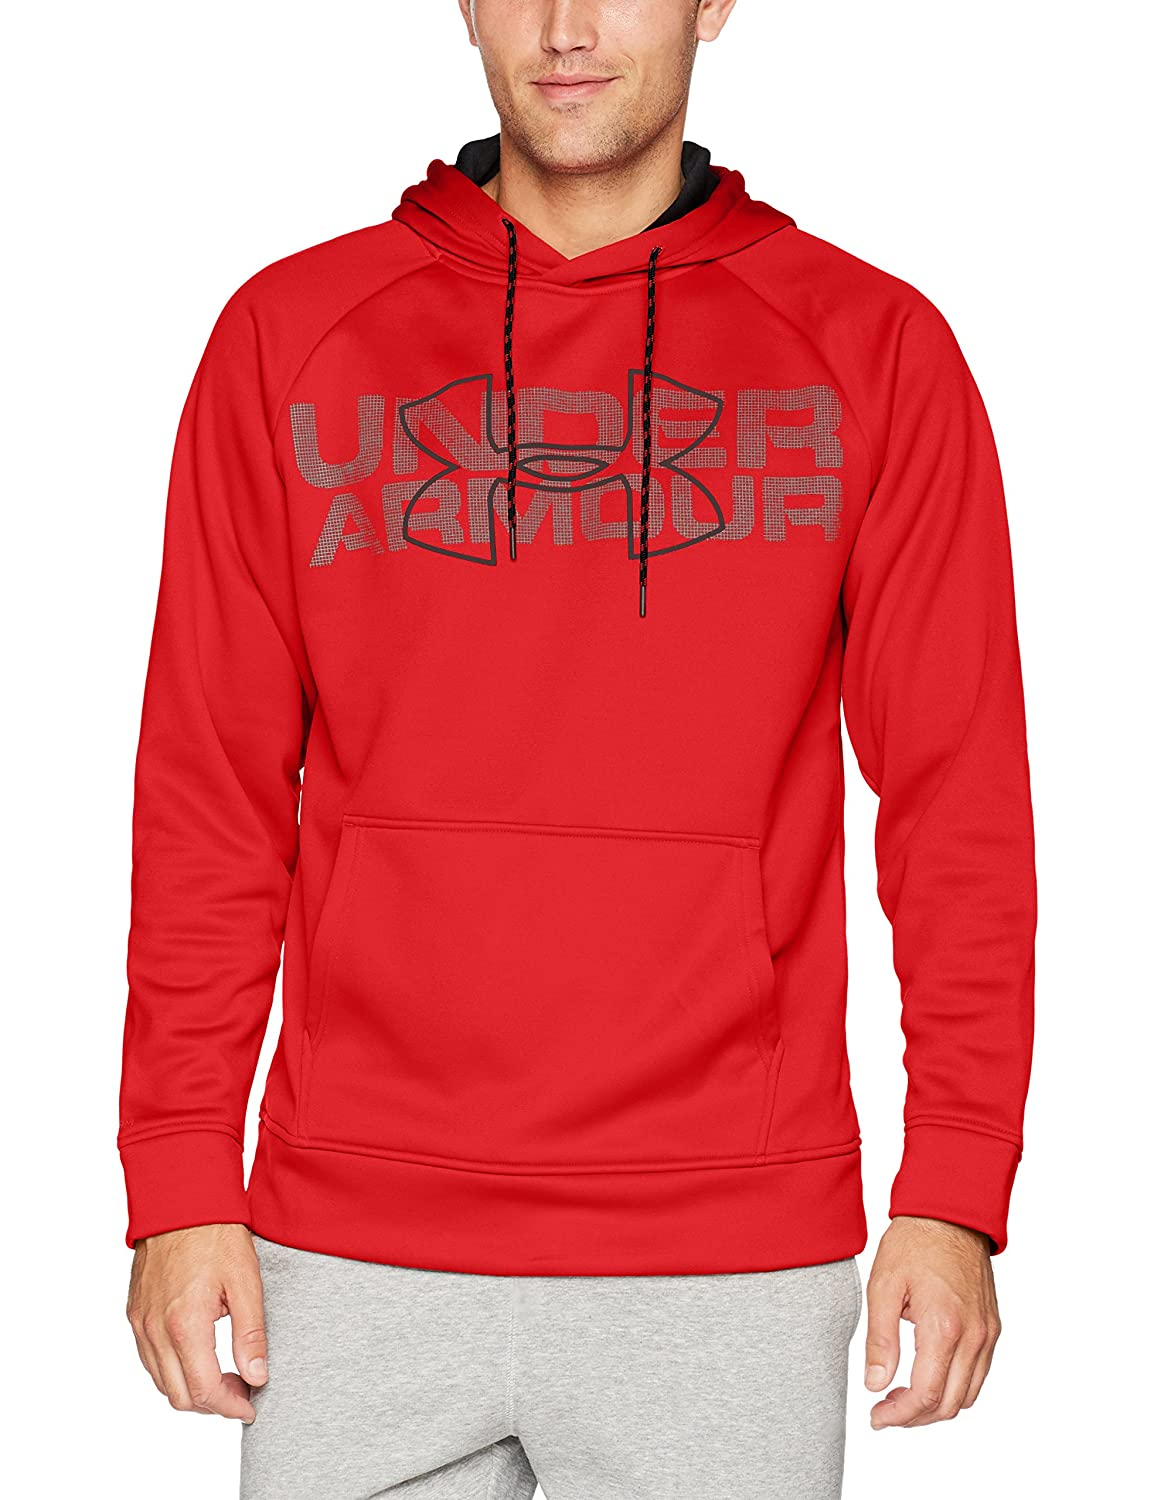 TALLA XL. Under Armour AF Graphic Po Sudadera, Hombre